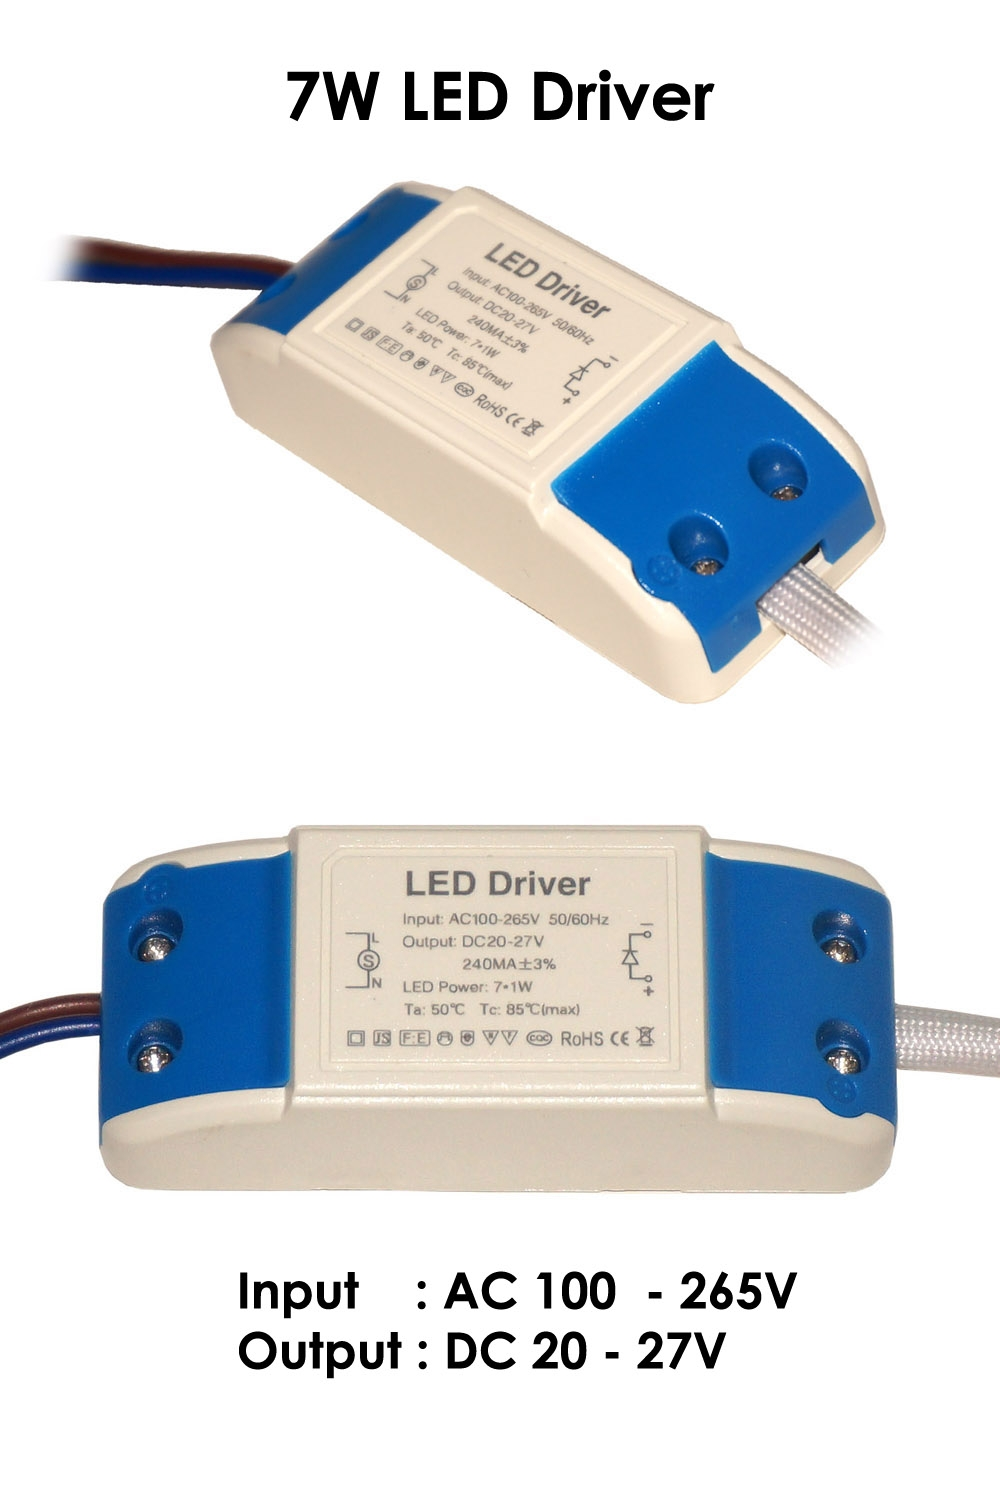 3w 36w Led Transformer For Mr16 Strip Light Ac To Dc Compact Constant Current Ce Driver Circuit Manufacturer From Voltage And Output